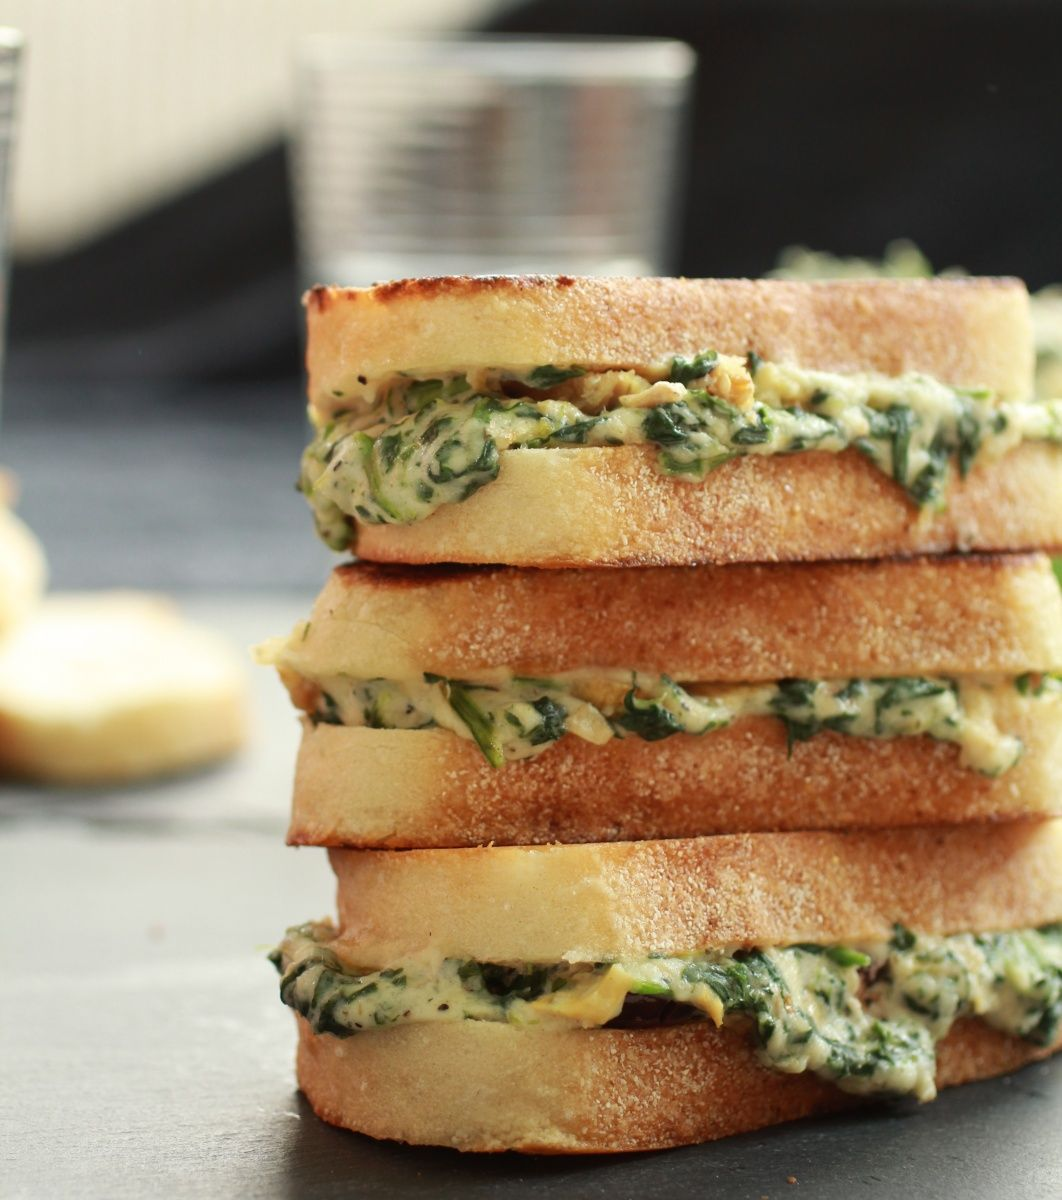 spinach and artichoke grilled cheese sandwich. YES PLEASE.